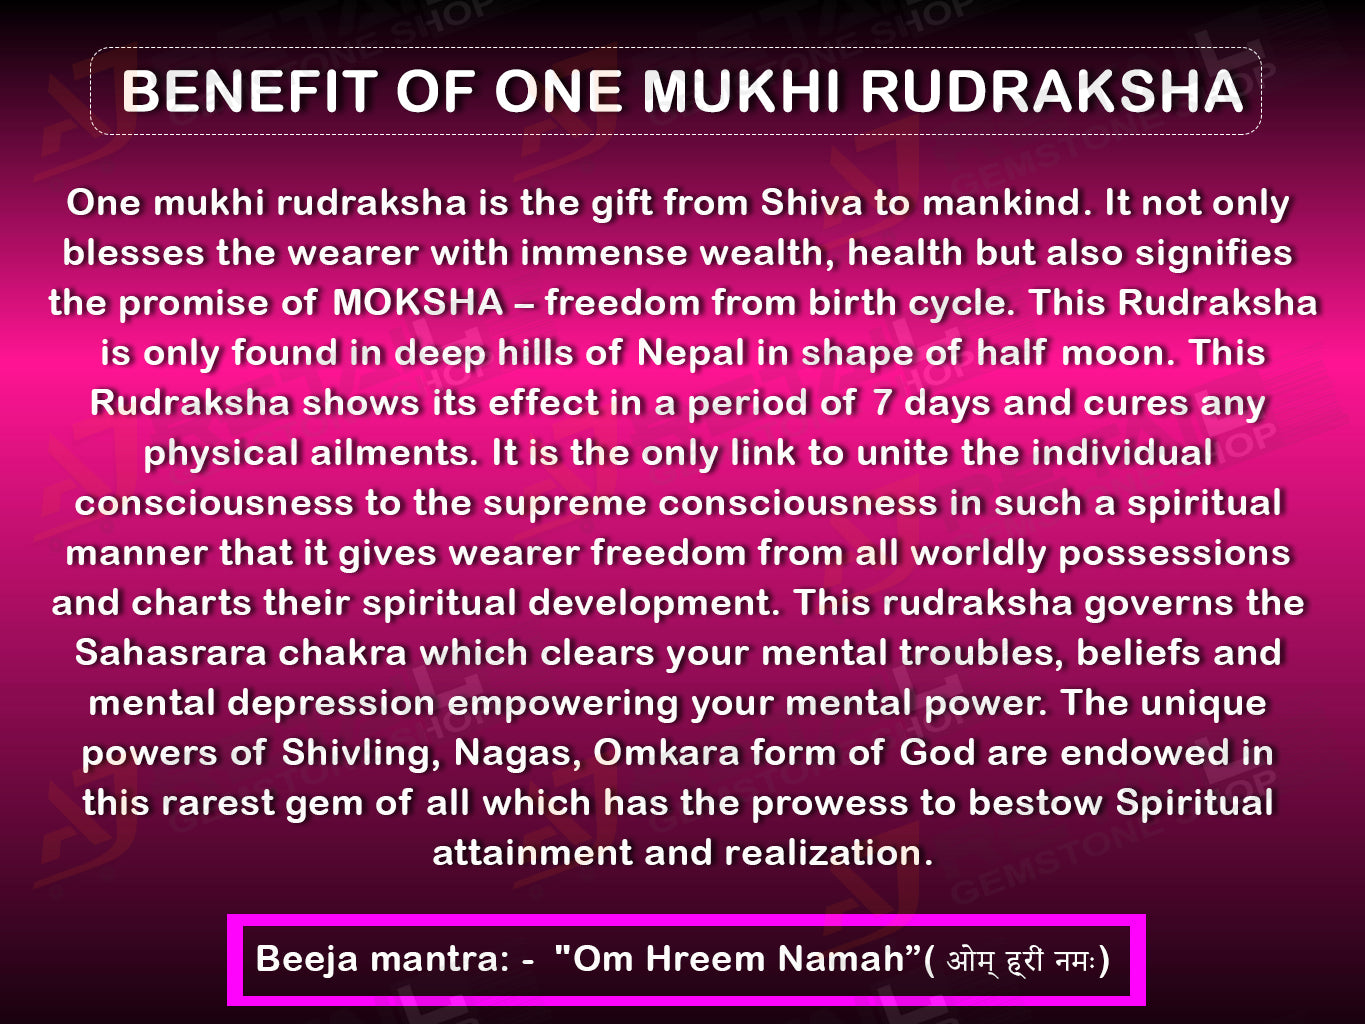 Benefit of one mukhi rudraksha